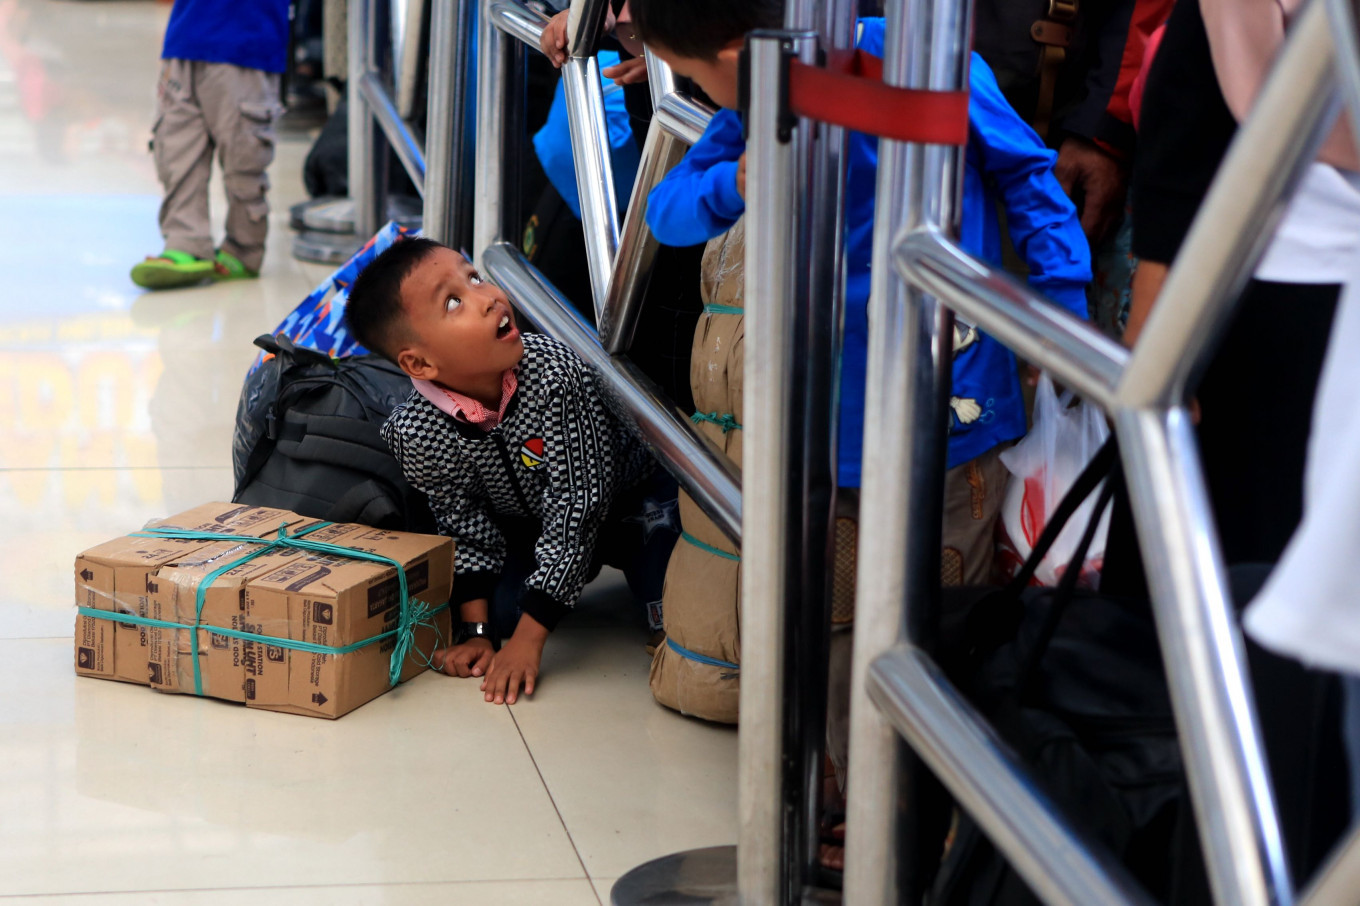 Rail good time: Children joke as they wait to board the KA Gumarang train, which will travel to Surabaya, East Java, from Pasar Senen Station in Central Jakarta, during the coming home together program sponsored by the State-Owned Enterprises Ministry on Tuesday. JP/Seto Wardhana